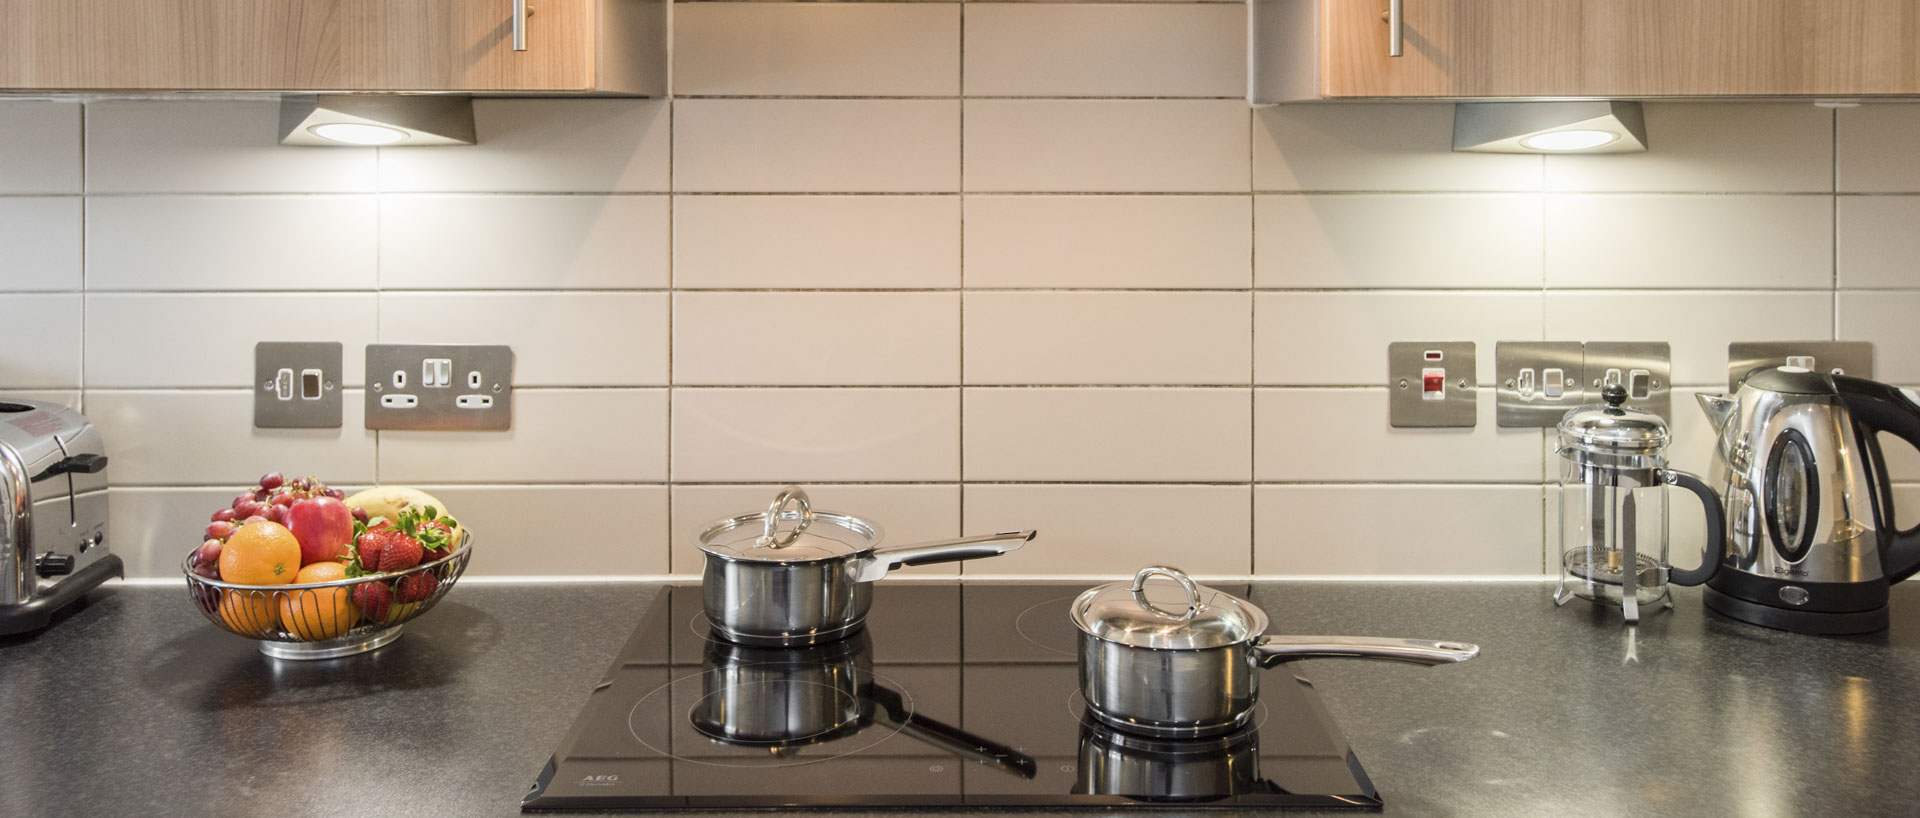 PREMIER SUITES Liverpool modern cooking hob in the serviced apartments